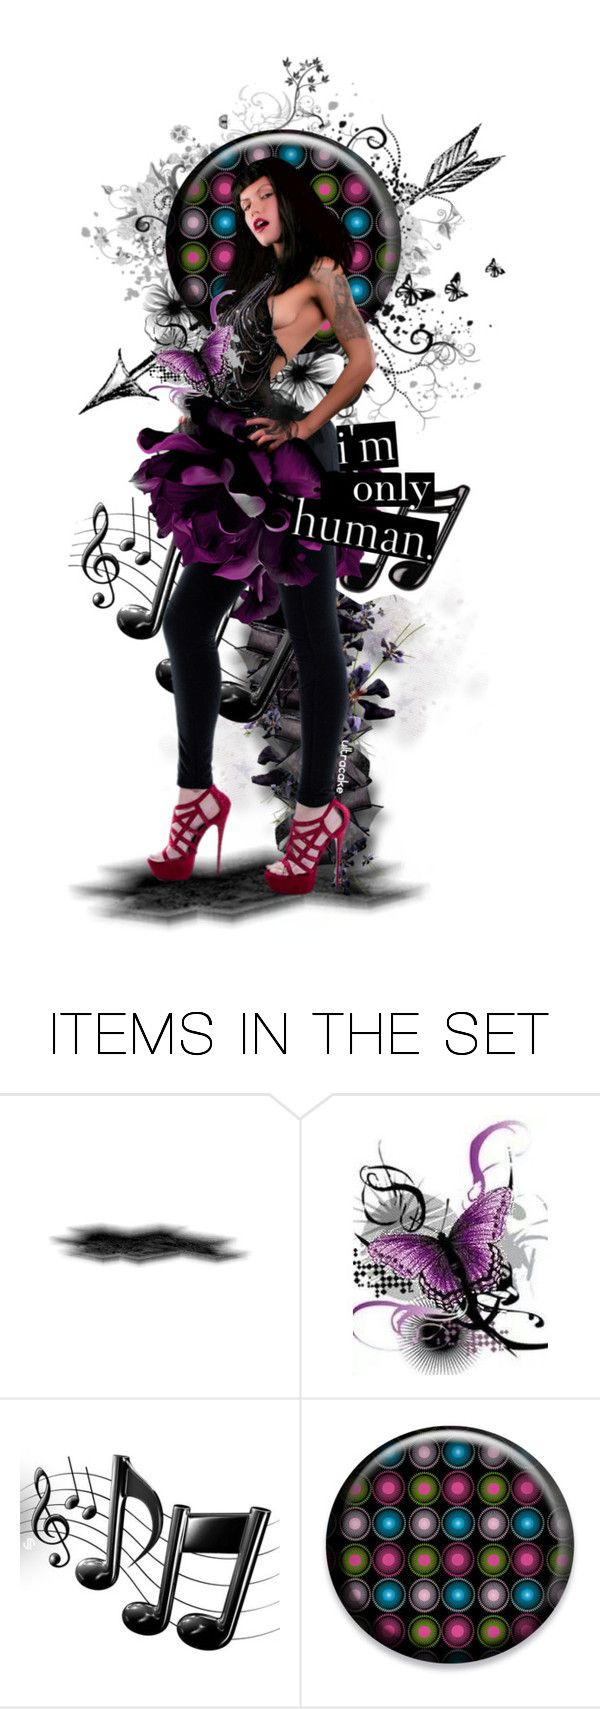 """""""I'm Only Human"""" by ultracake ❤ liked on Polyvore featuring art, music, dolls and ultracake"""